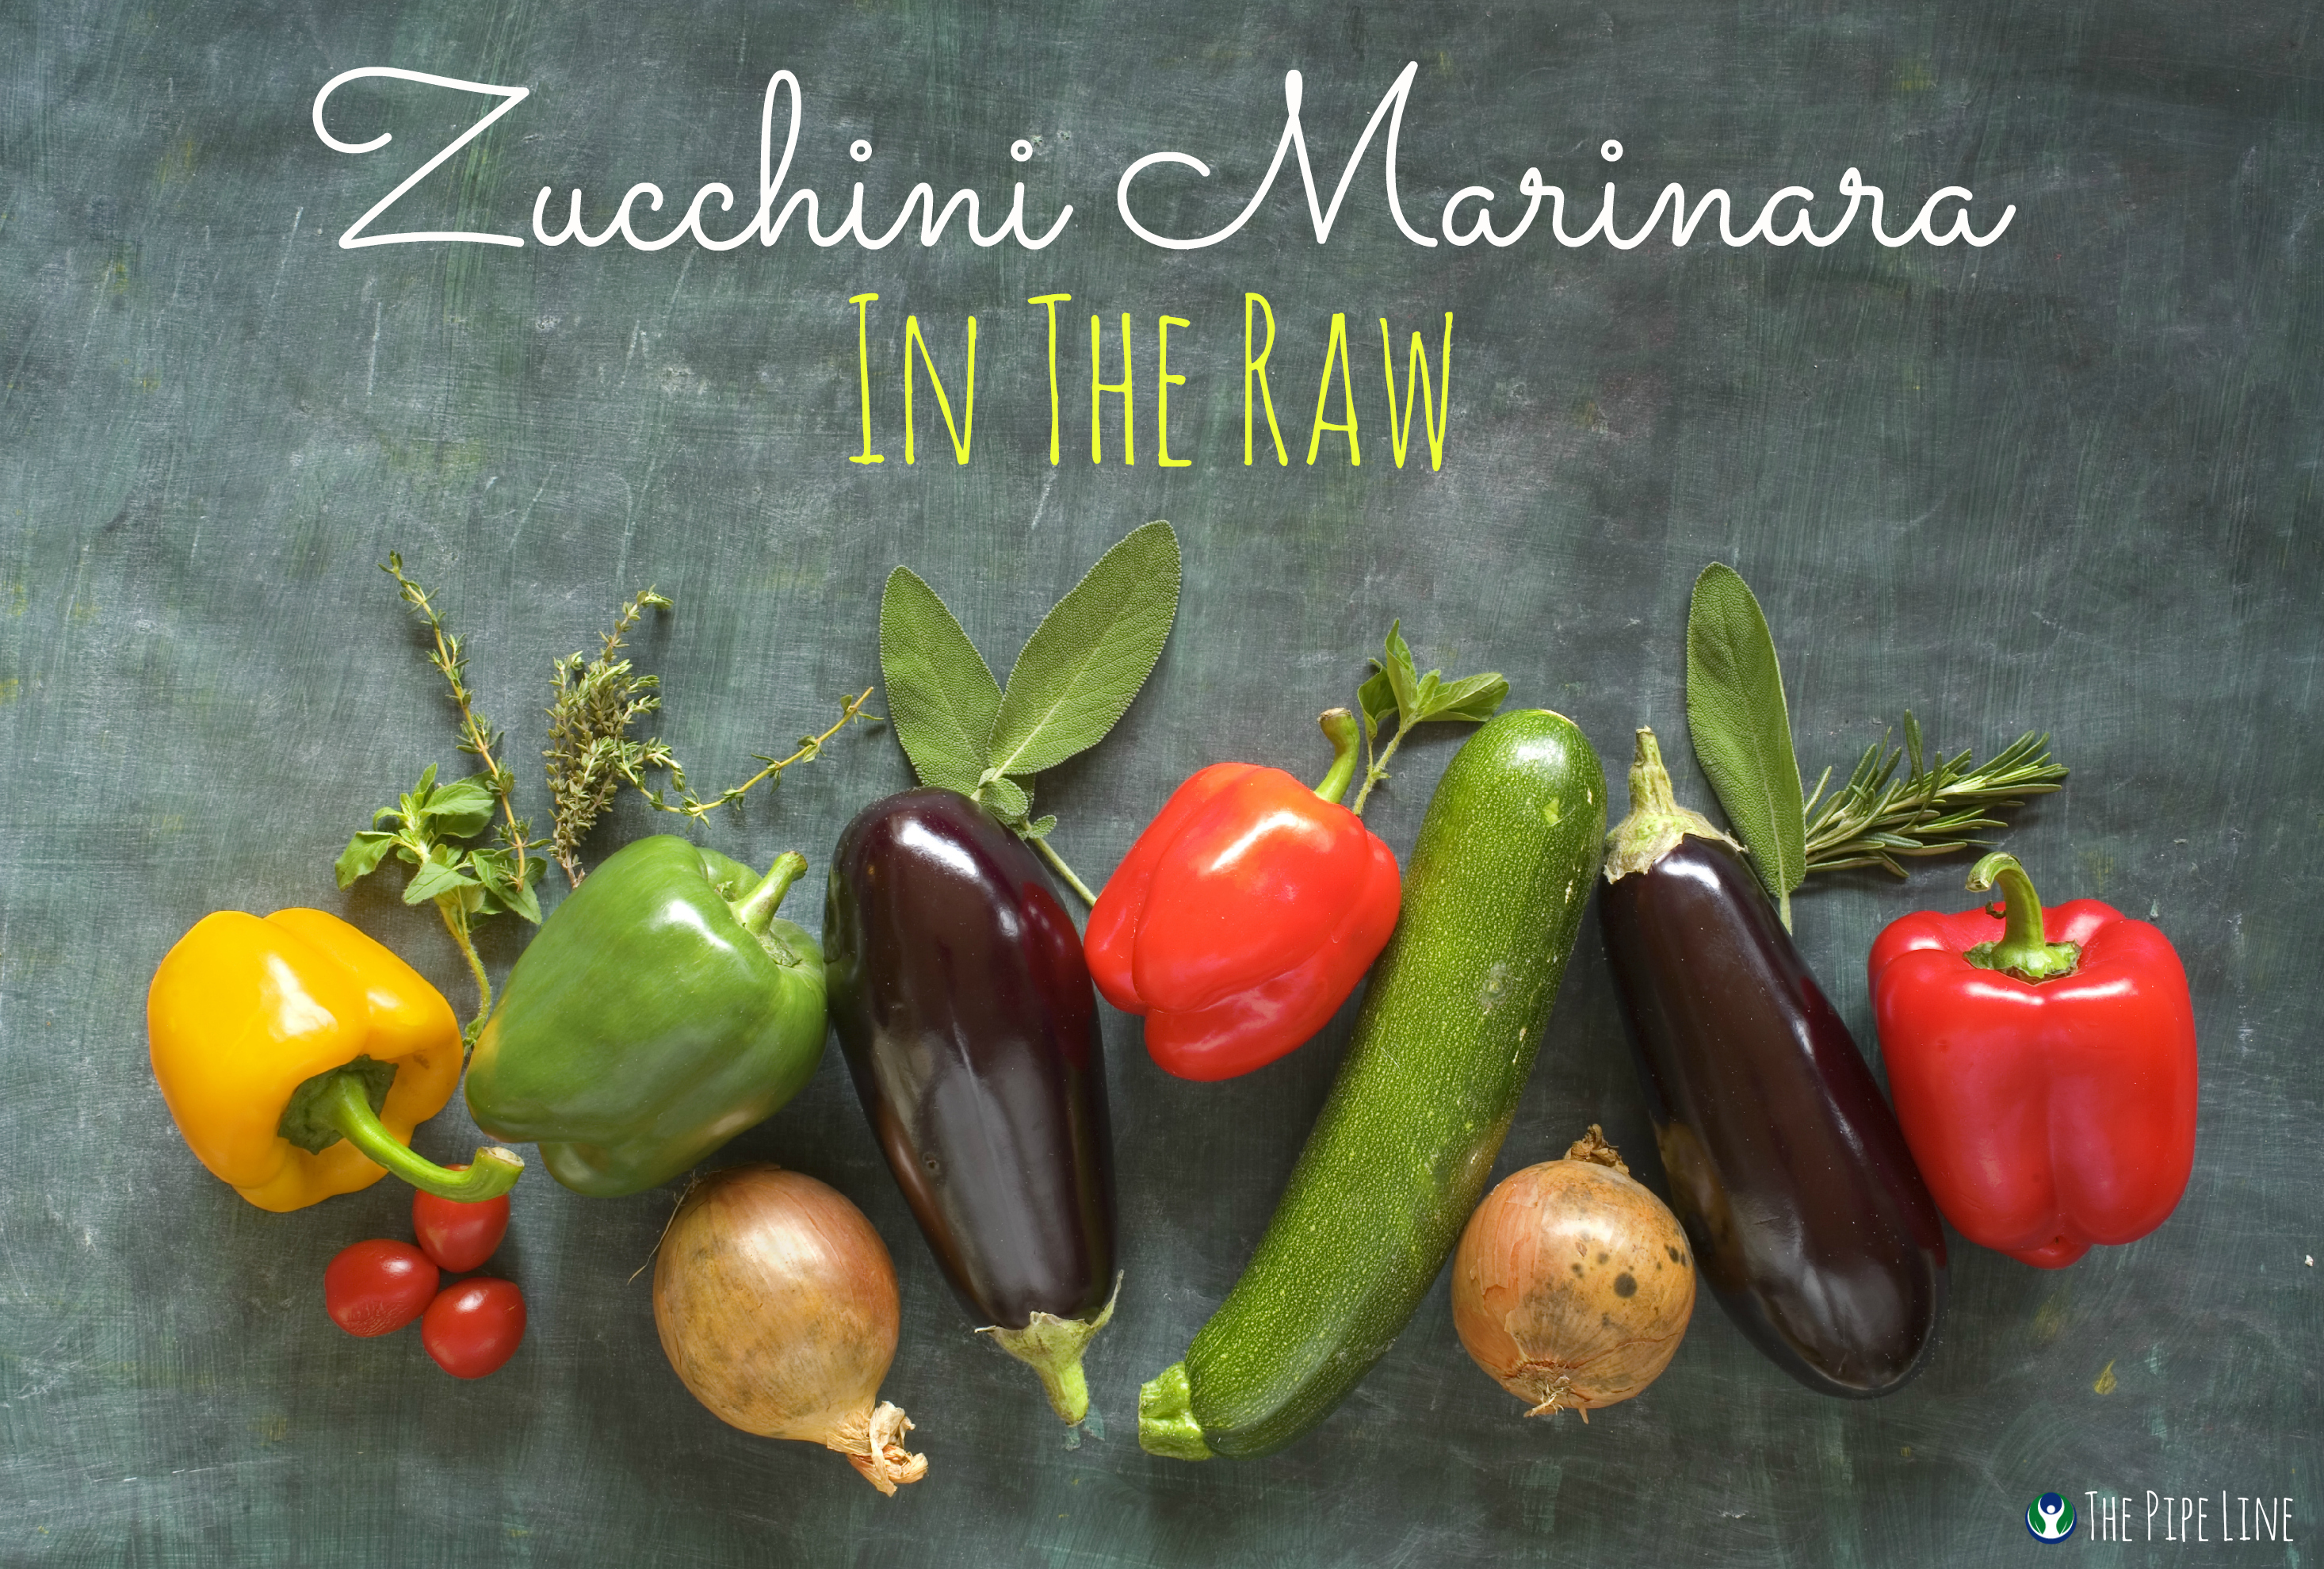 Piping Rock - The Pipe Line - Zucchini Marinara in the Raw - Julie's Kitchen - Vegan Recipe